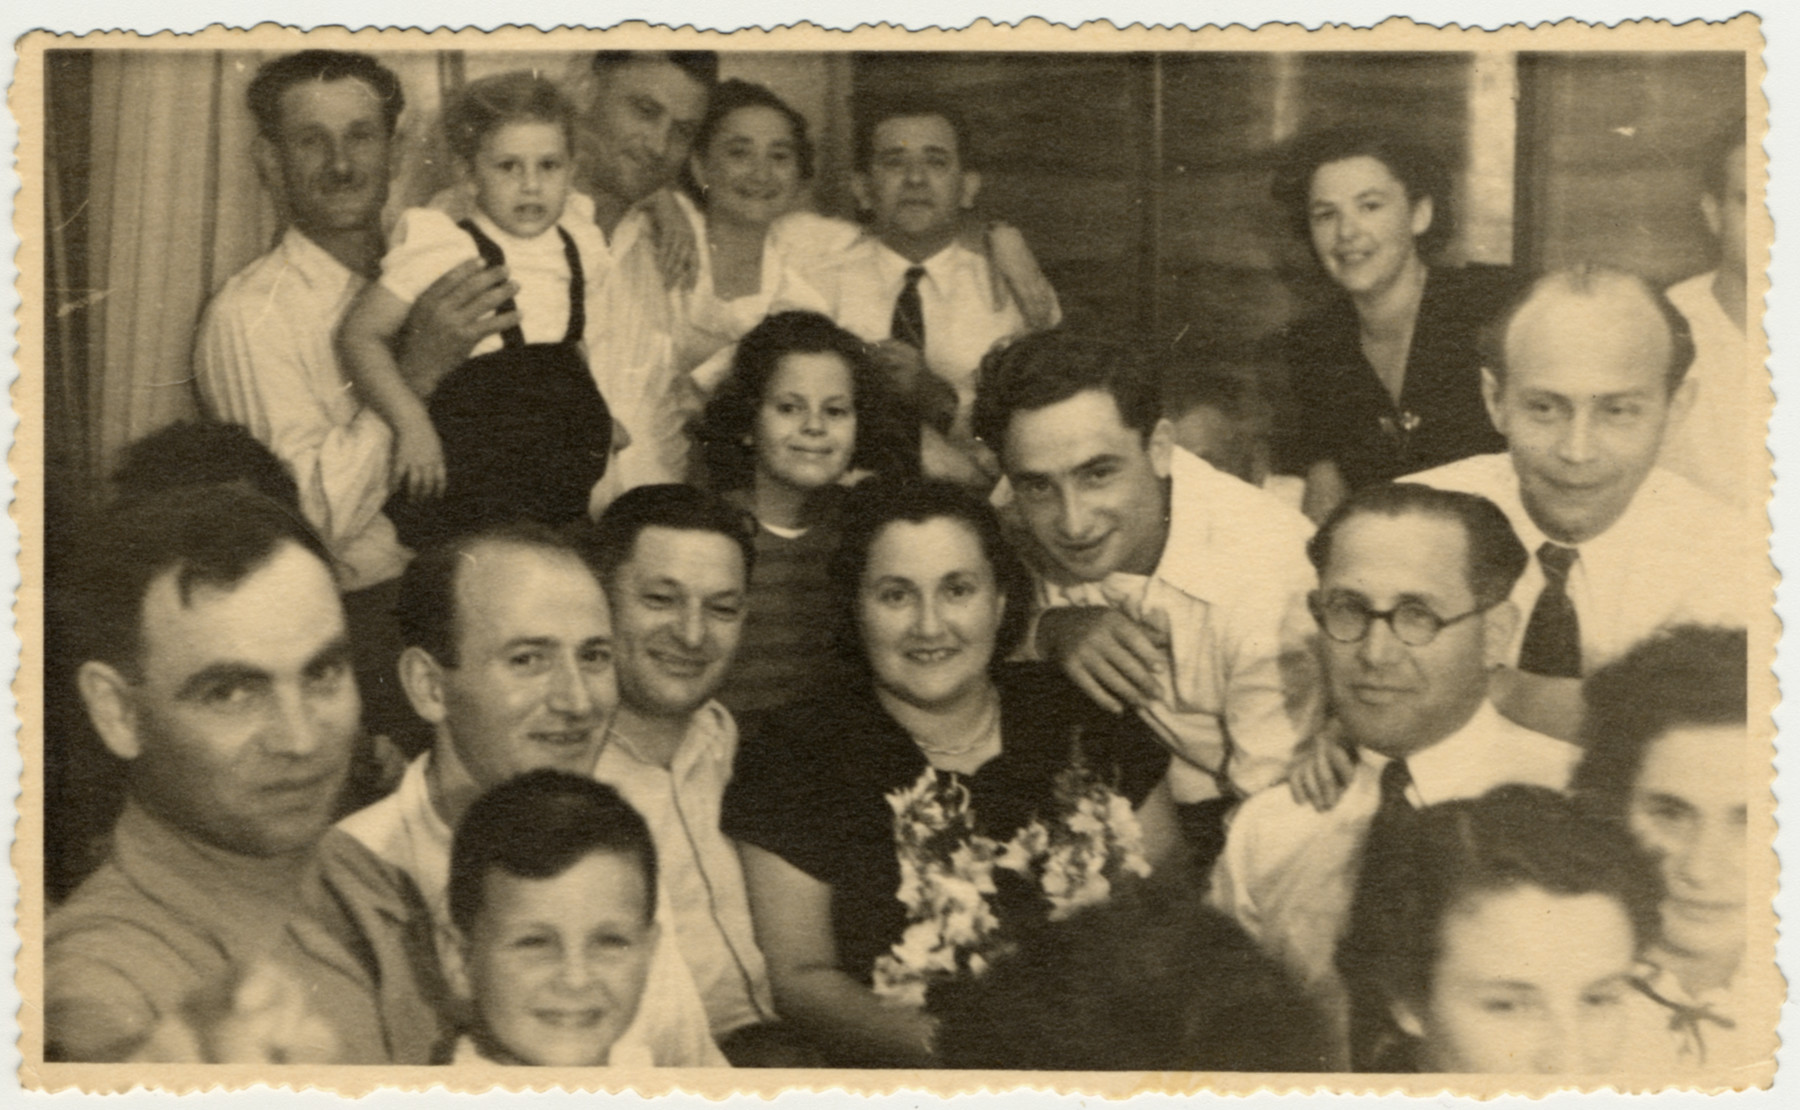 Former Bielski partisans gather for a celebration in Palestine.  Zus Bielski is pictured at the bottom left with his son Yakov.  Sonia Bielski is in the center holding the flowers and Aron Bielski is leaning up against her.  Also pictured are left Yehuda Bell (Bielski) first cousin, his daughter Neelie (now known as Leslie Bell), Dr. Henry Pinsky and his with Genya. Far right top, Raya Kalmanovitz (secretary of the Bielsky group).